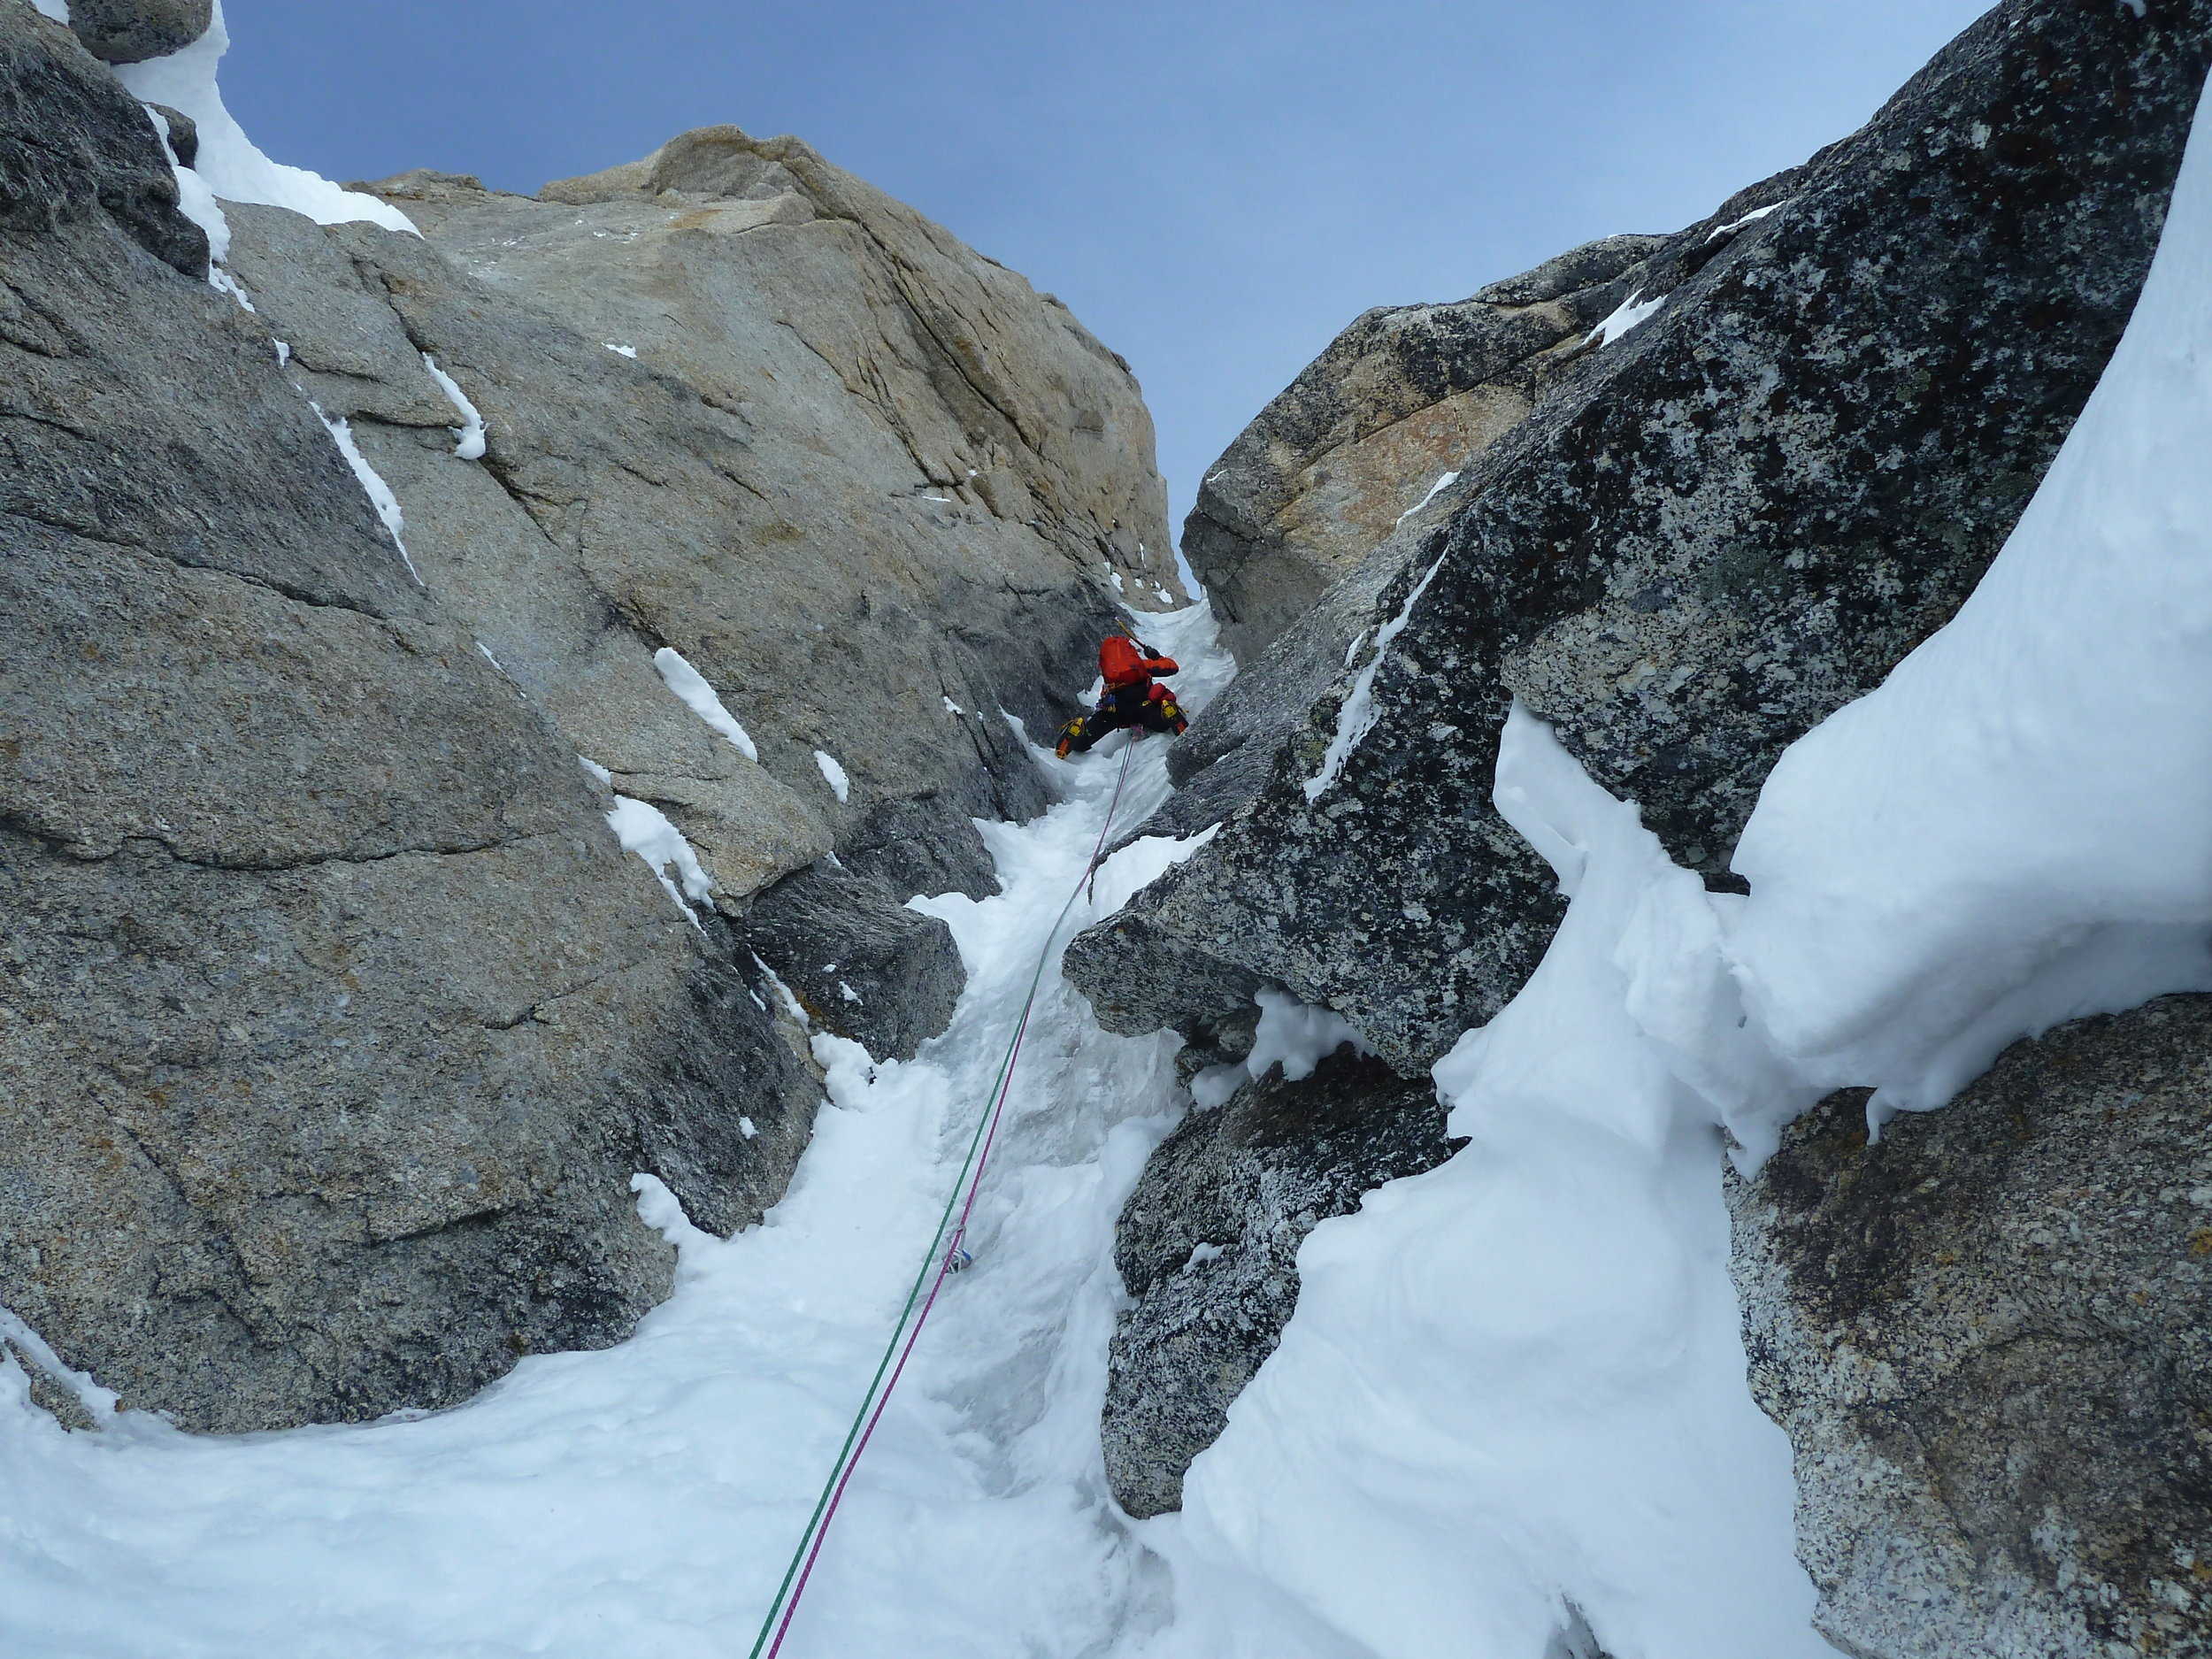 Uisdean on one of the brilliant ice pitches - perhaps the upper section of The Shaft? Moonflower, Mt. Hunter.